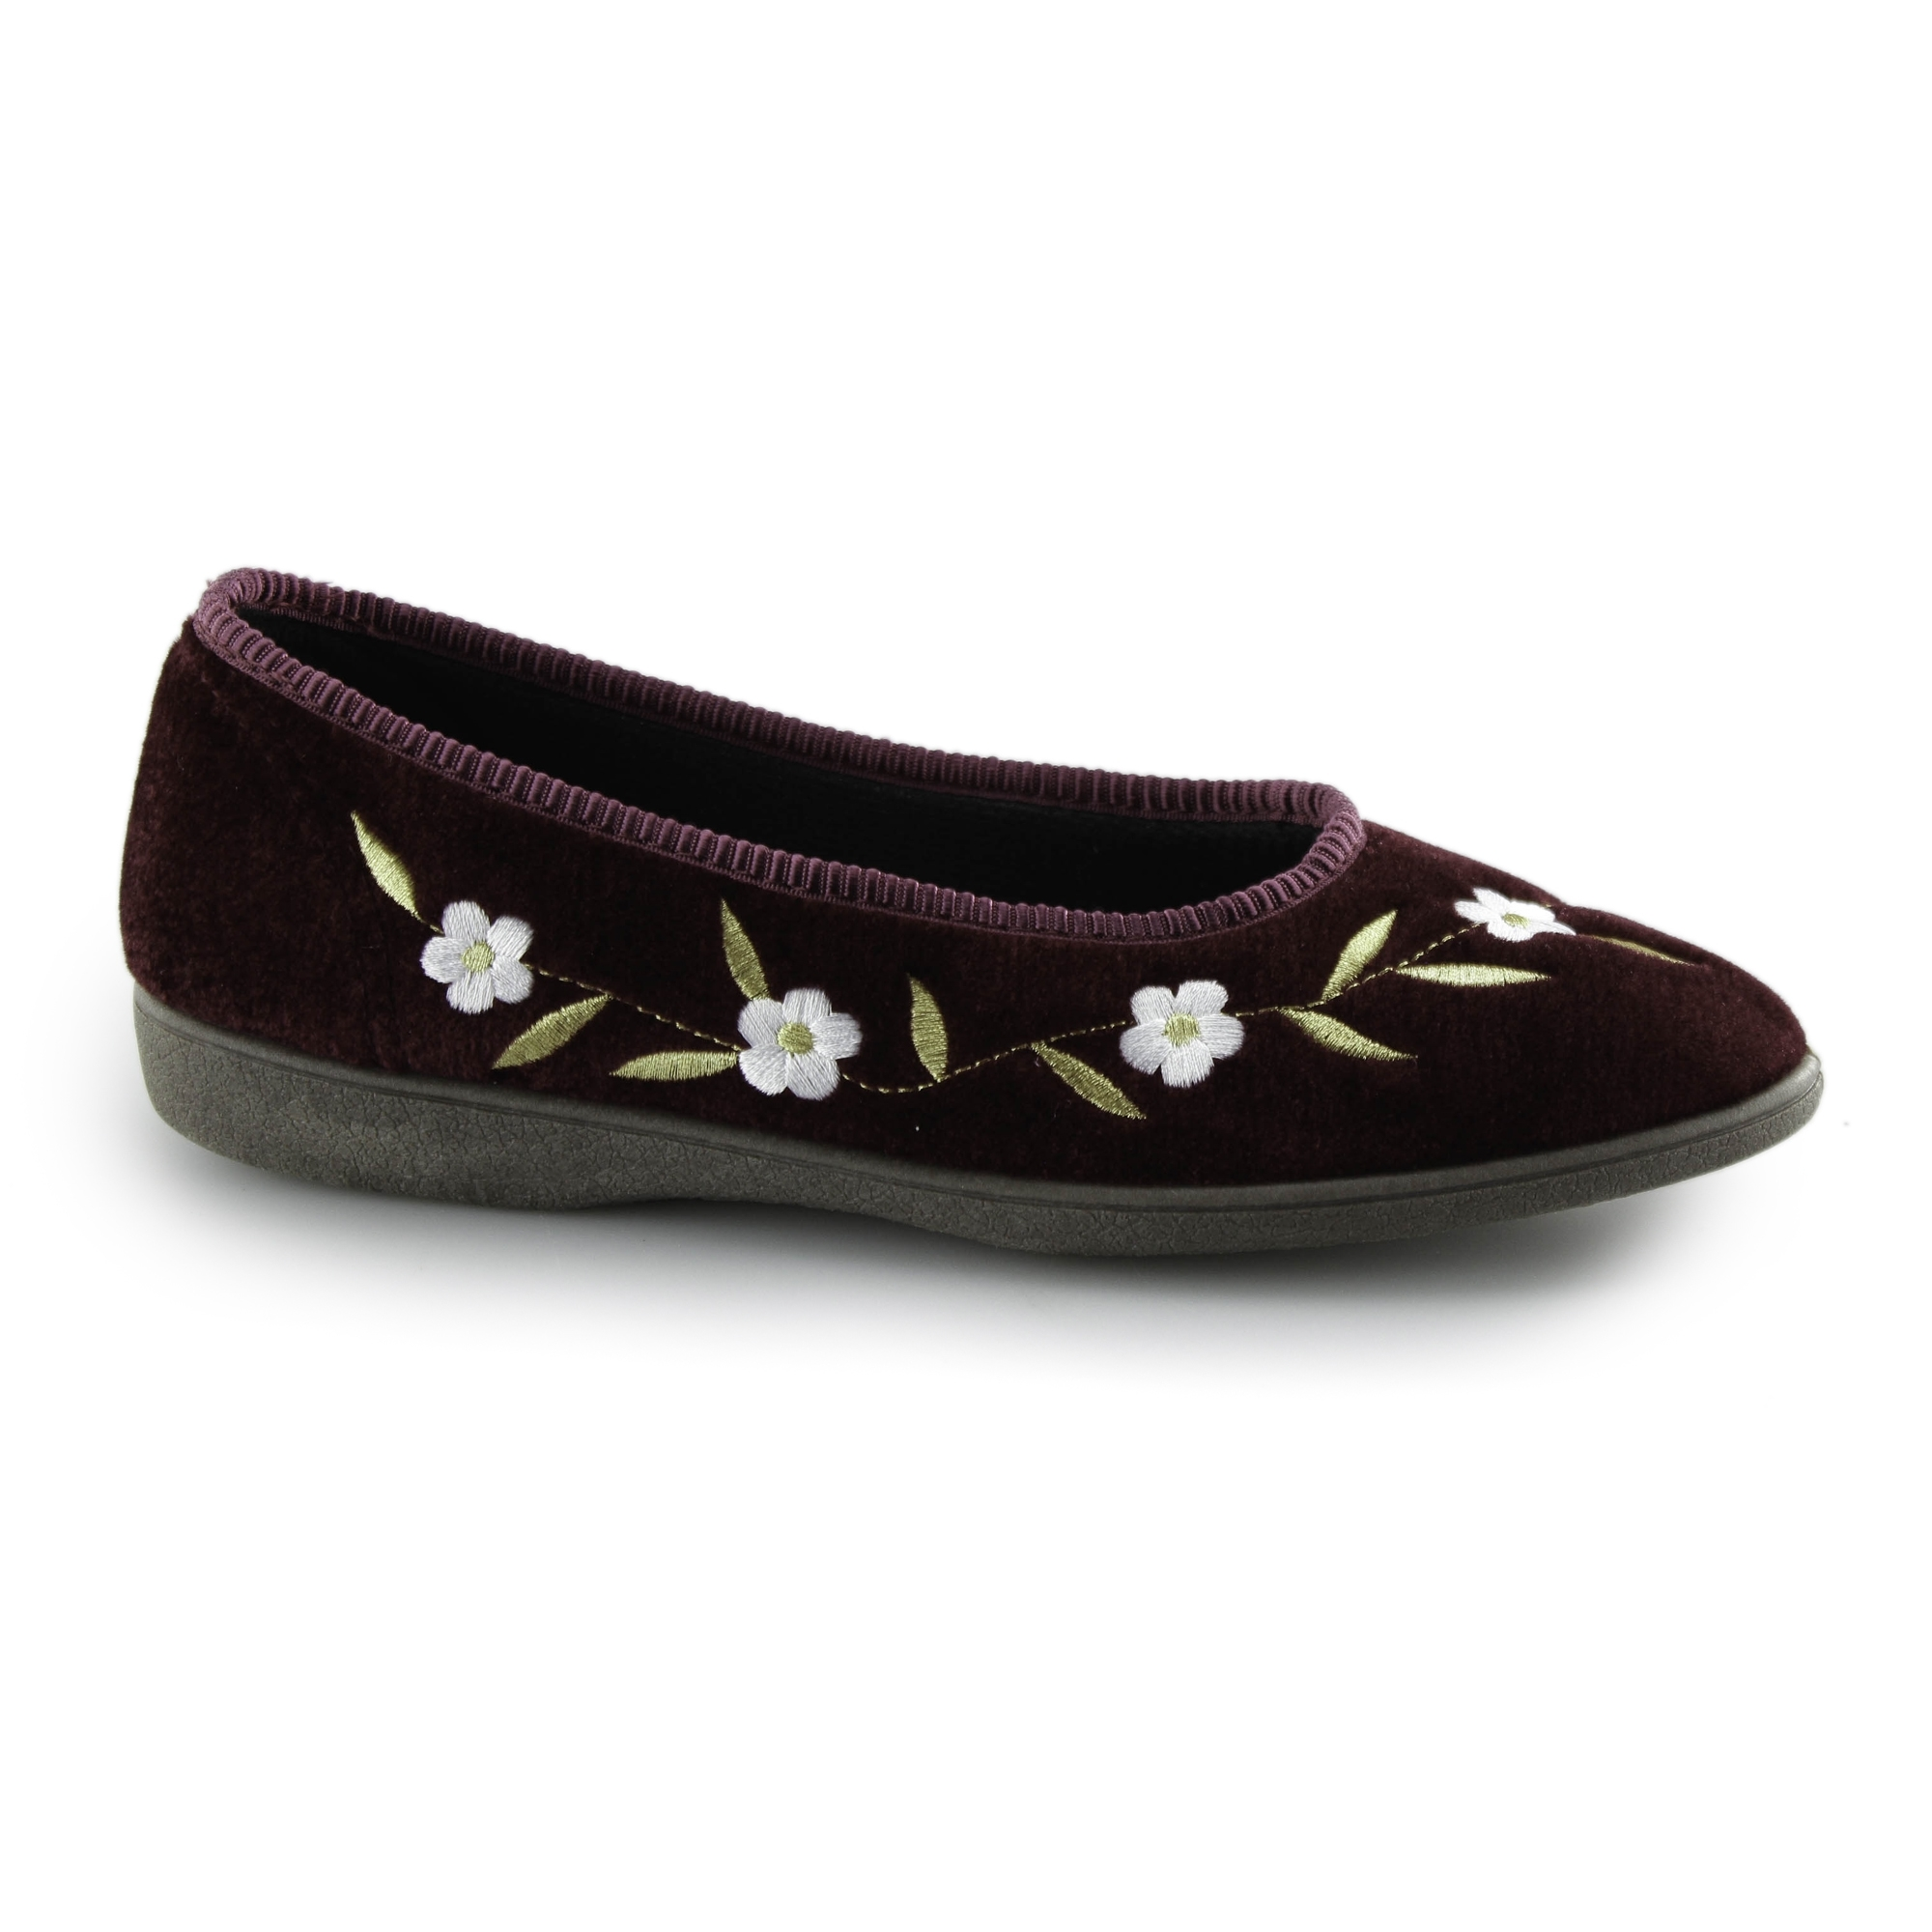 Dunlop CELIA Ladies Womens Touch Close Floral Comfort Warm Slippers Wine Red